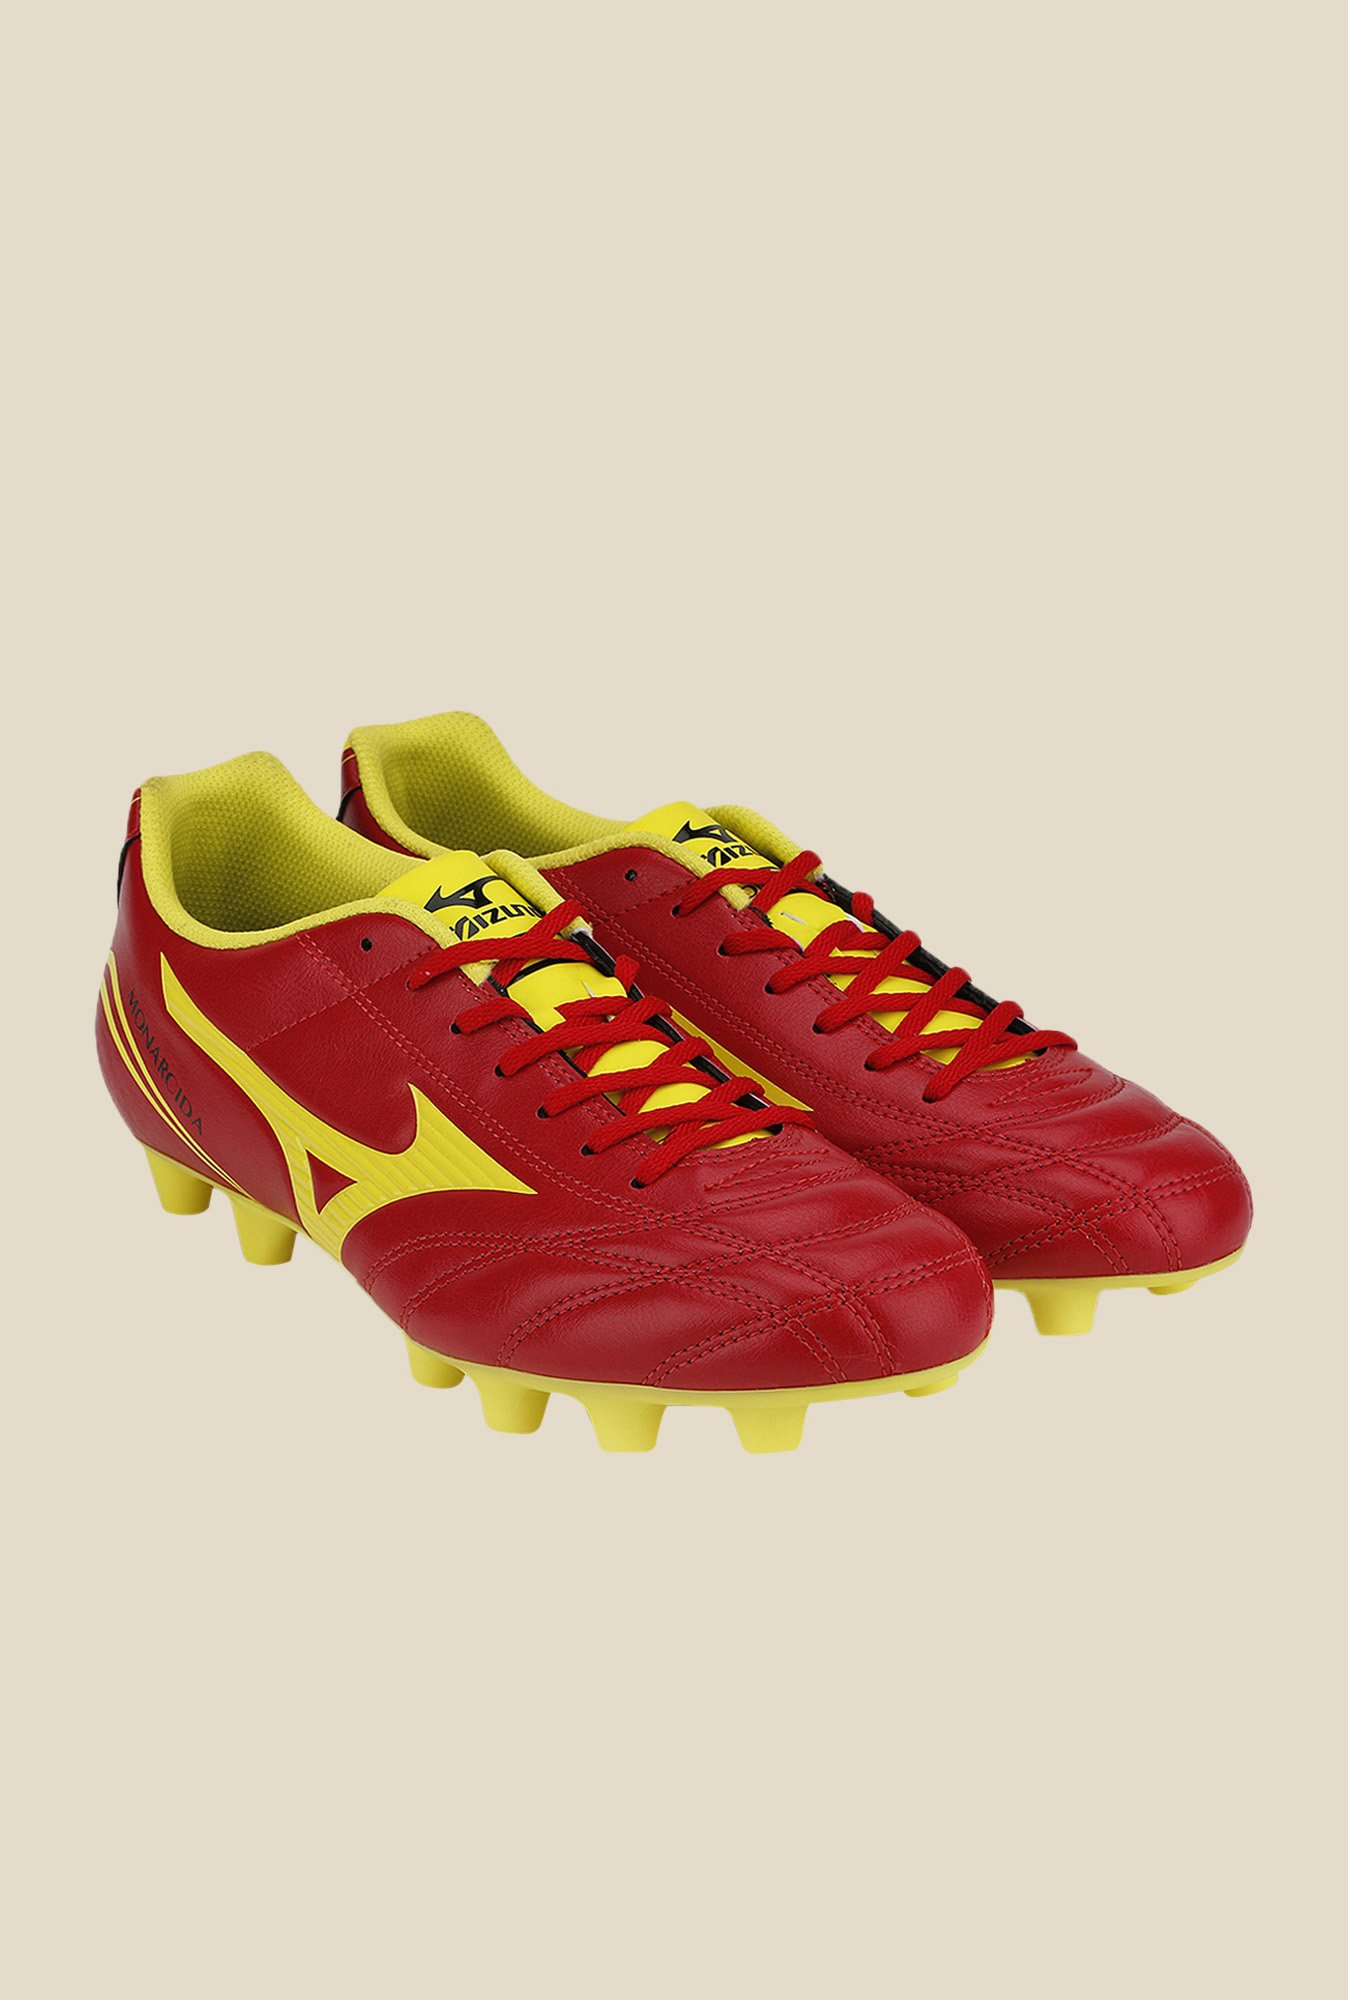 Mizuno Monarcida FS MD (Wide) Red & Green Football Shoes